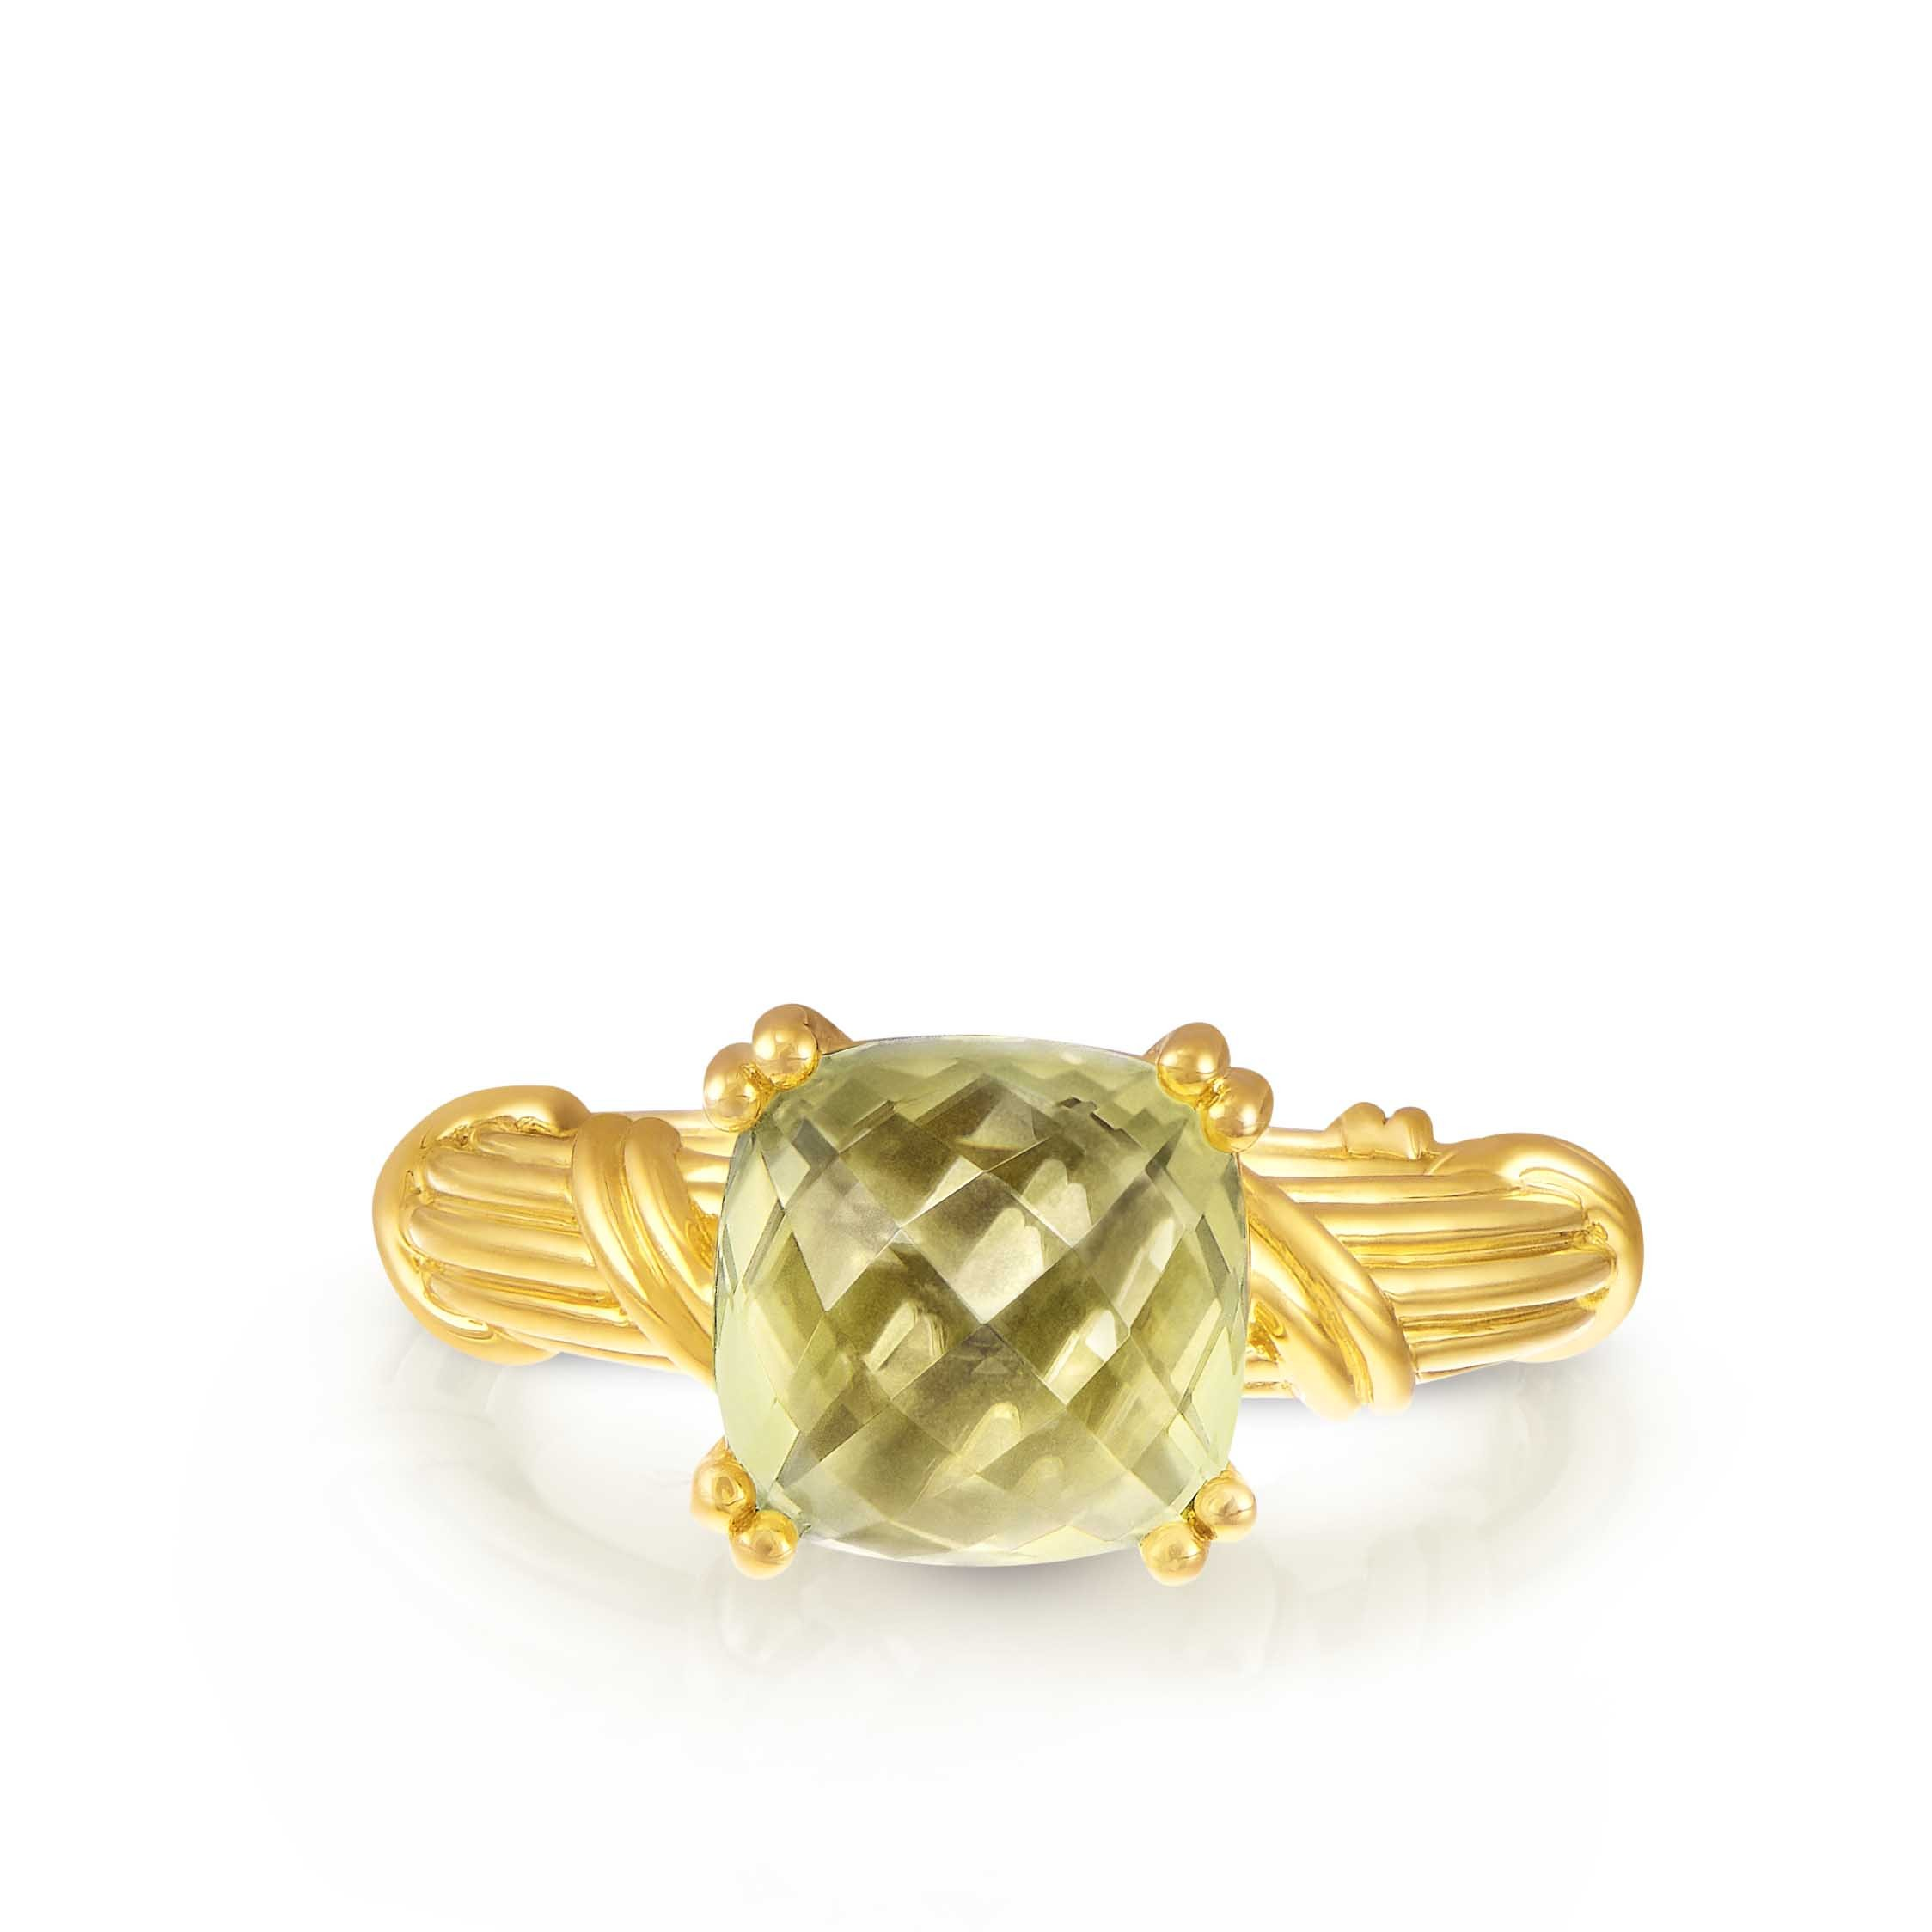 Fantasies Lemon Citrine Cocktail  Ring in 18K yellow gold